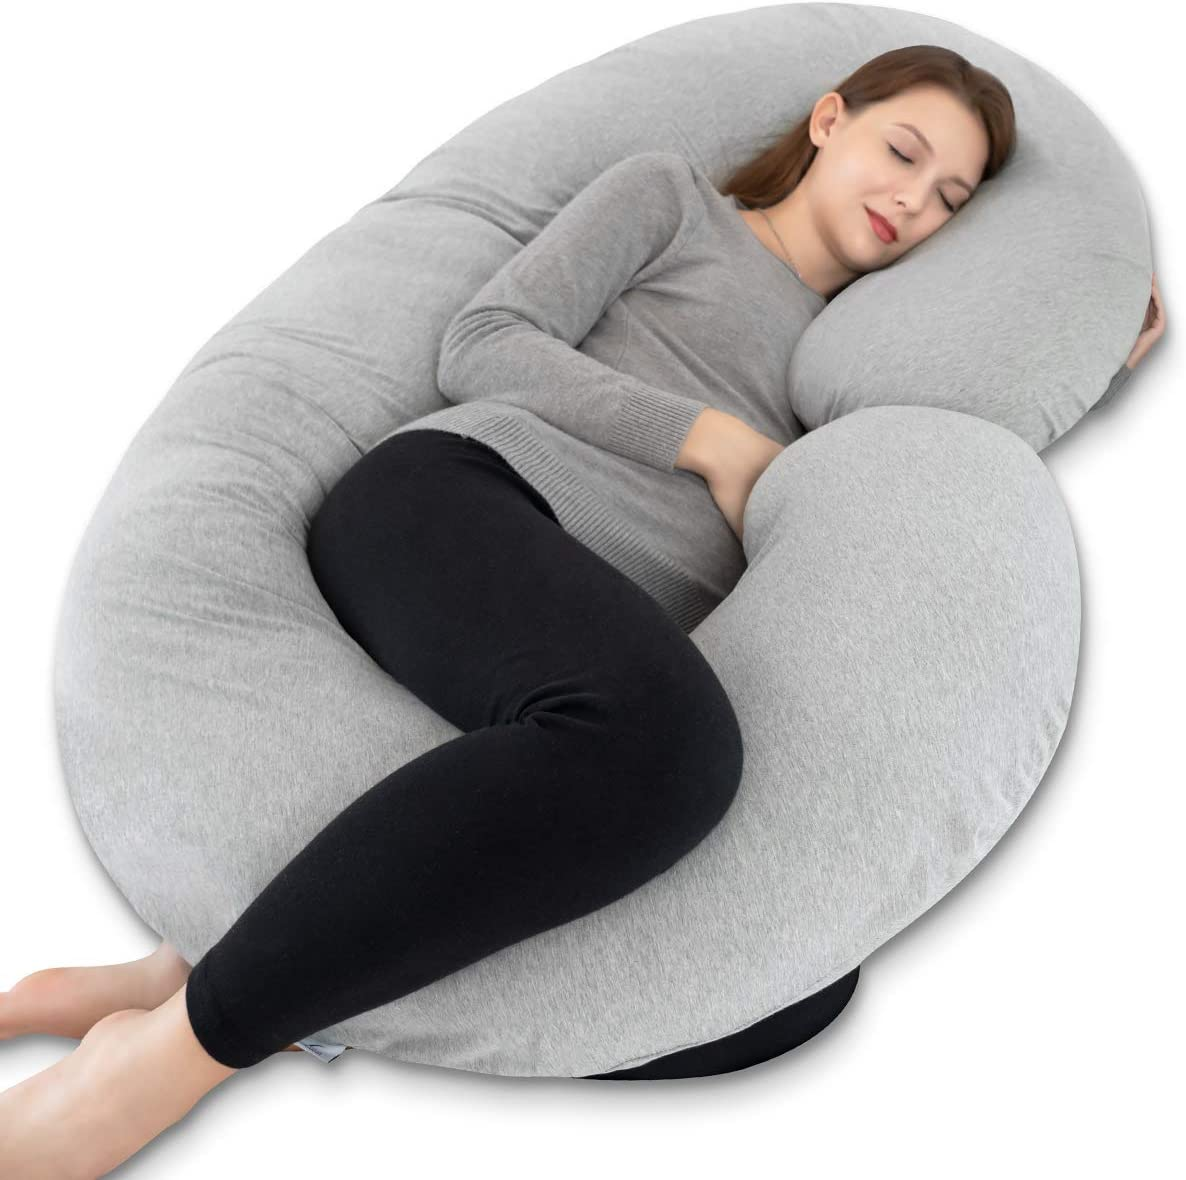 INSEN Pregnancy Pillow, Maternity Body Pillow for Pregnant Women,C Shaped Pillow with Jersey Body Pillow Cover